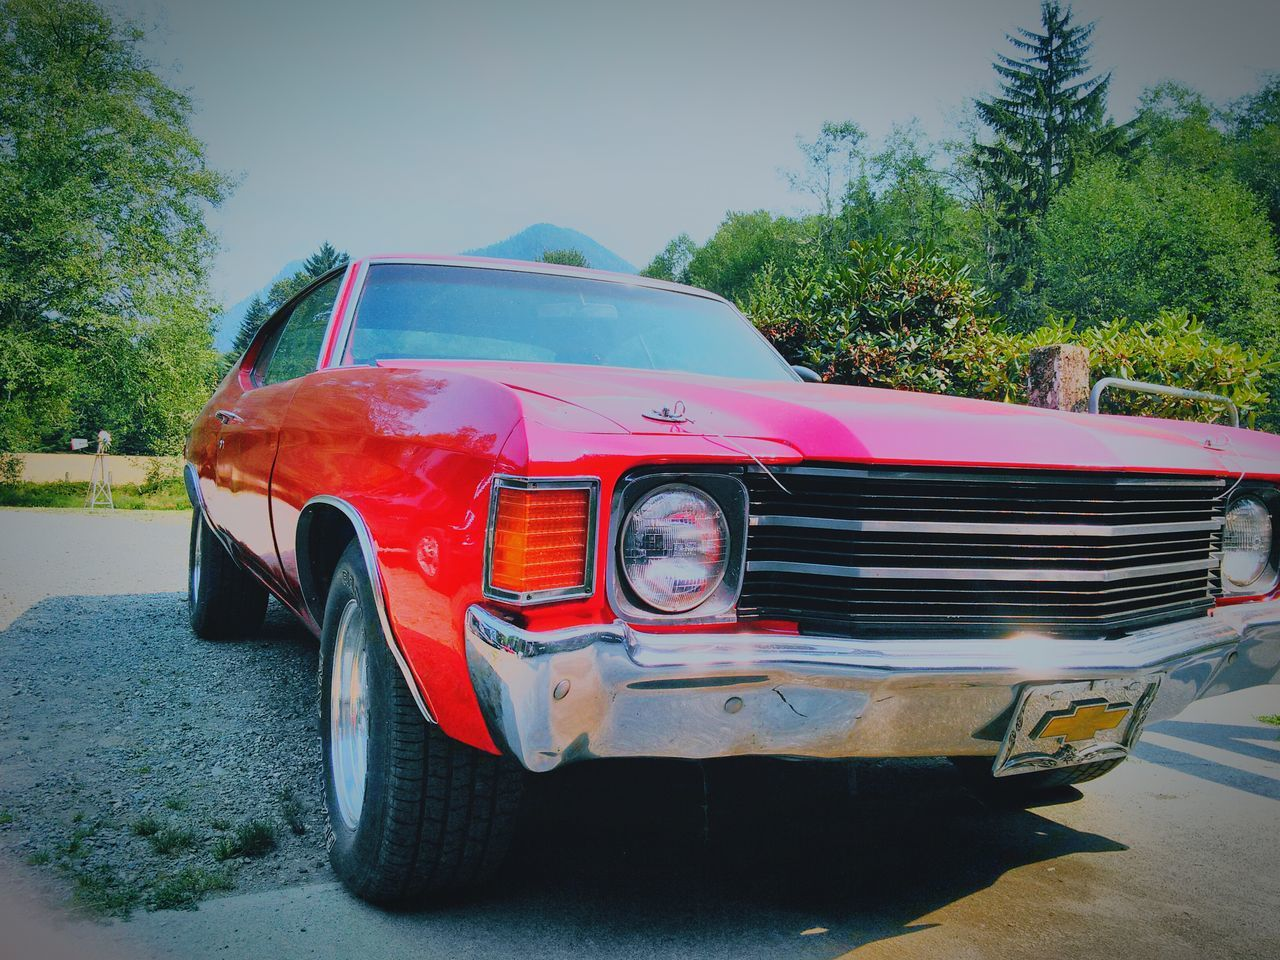 transportation, mode of transport, car, land vehicle, stationary, day, old-fashioned, red, tree, outdoors, no people, sky